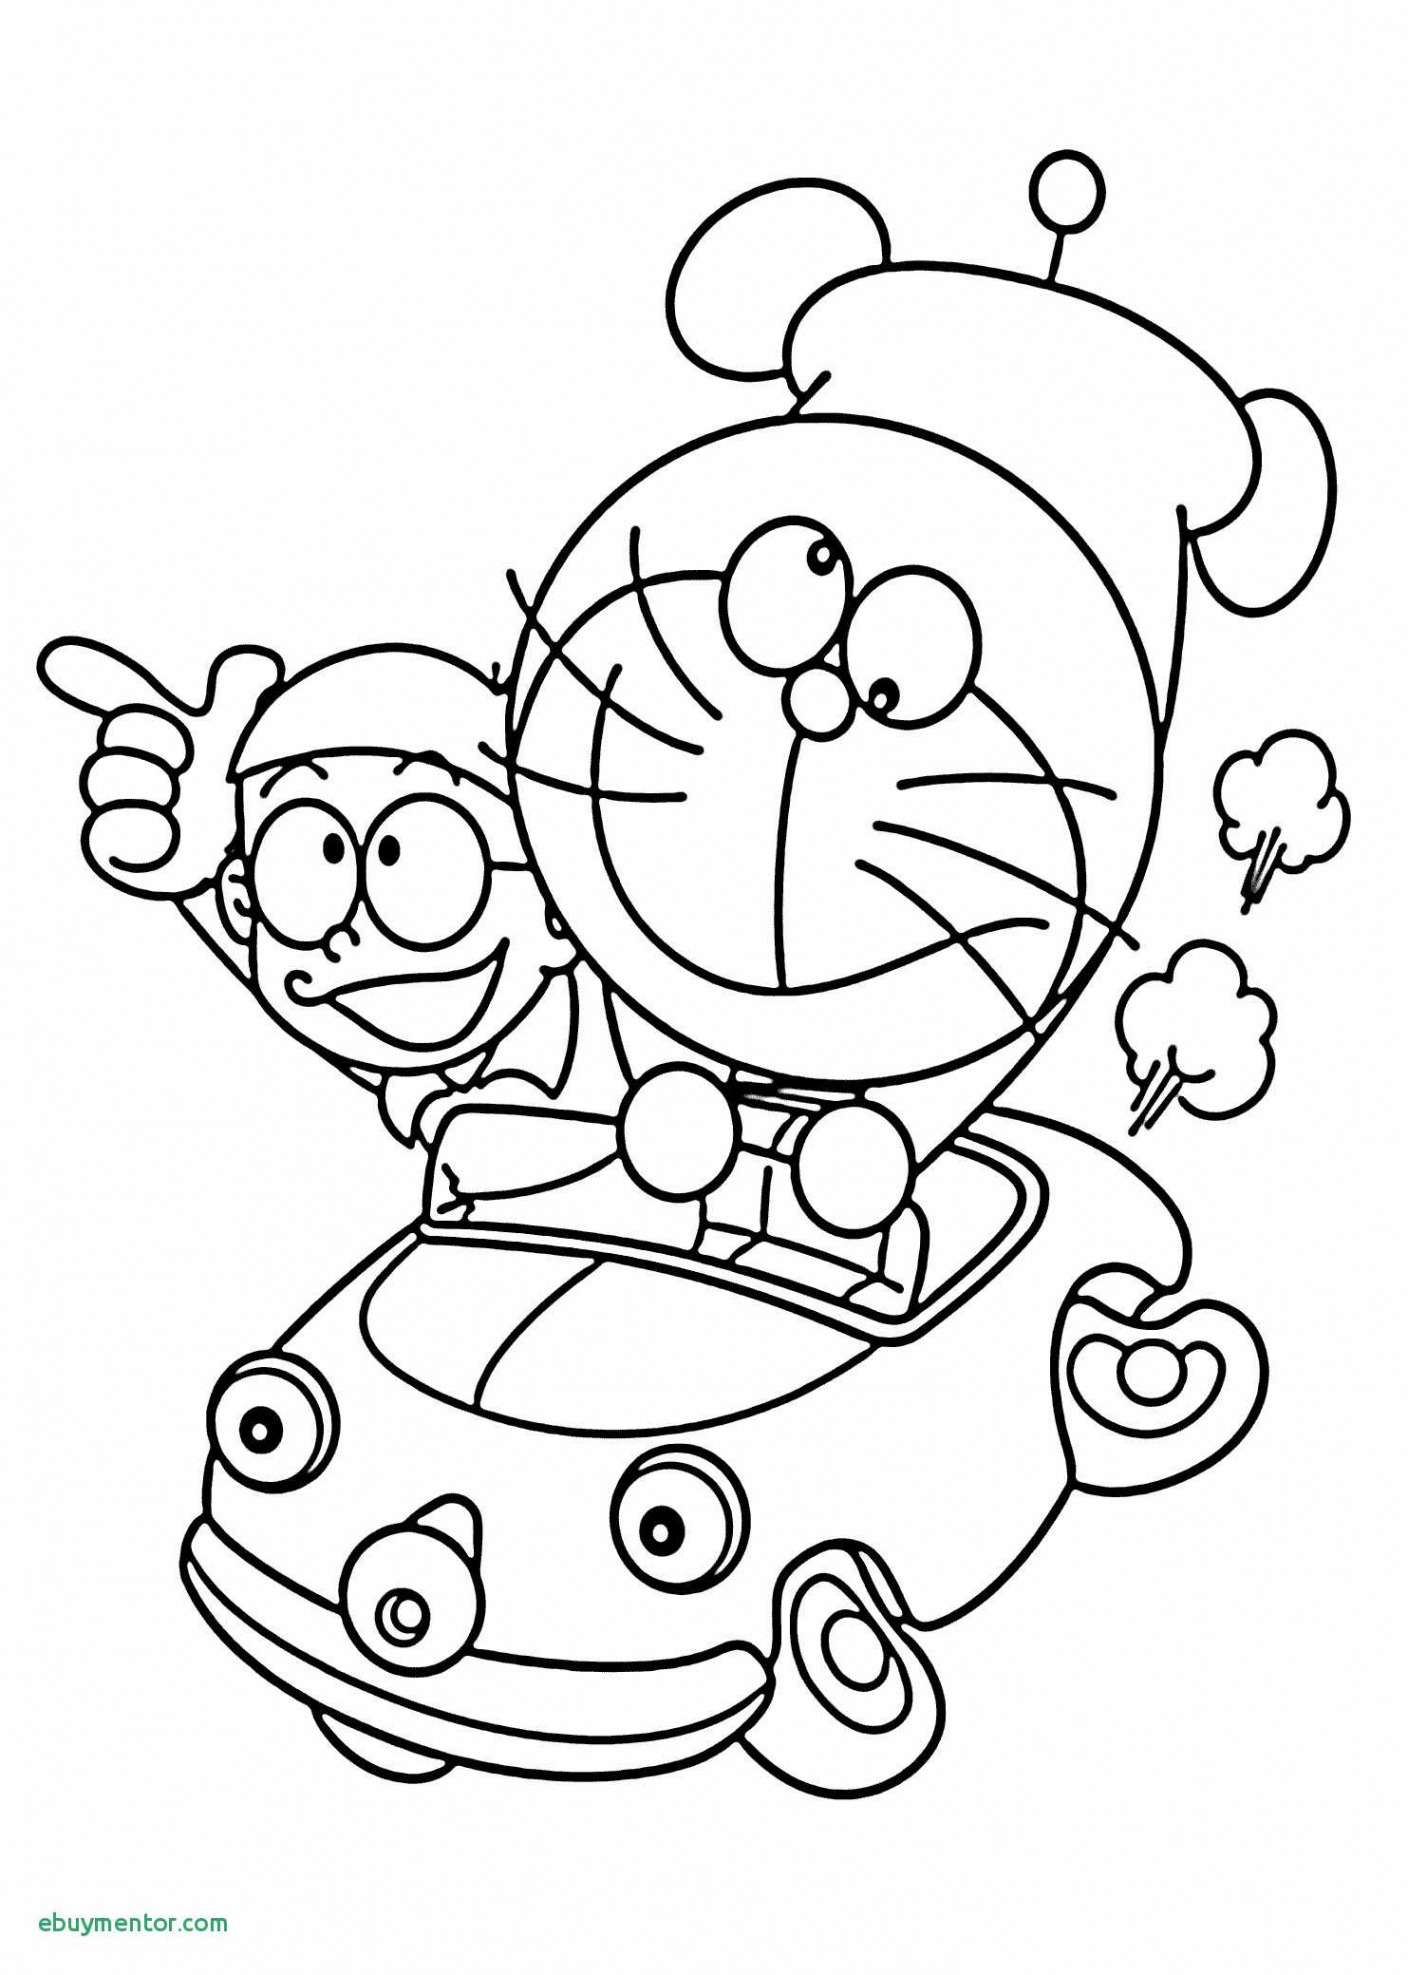 jasmine becket griffith coloring pages | Jasmine Becket Griffith Coloring Book Pages to Print ...